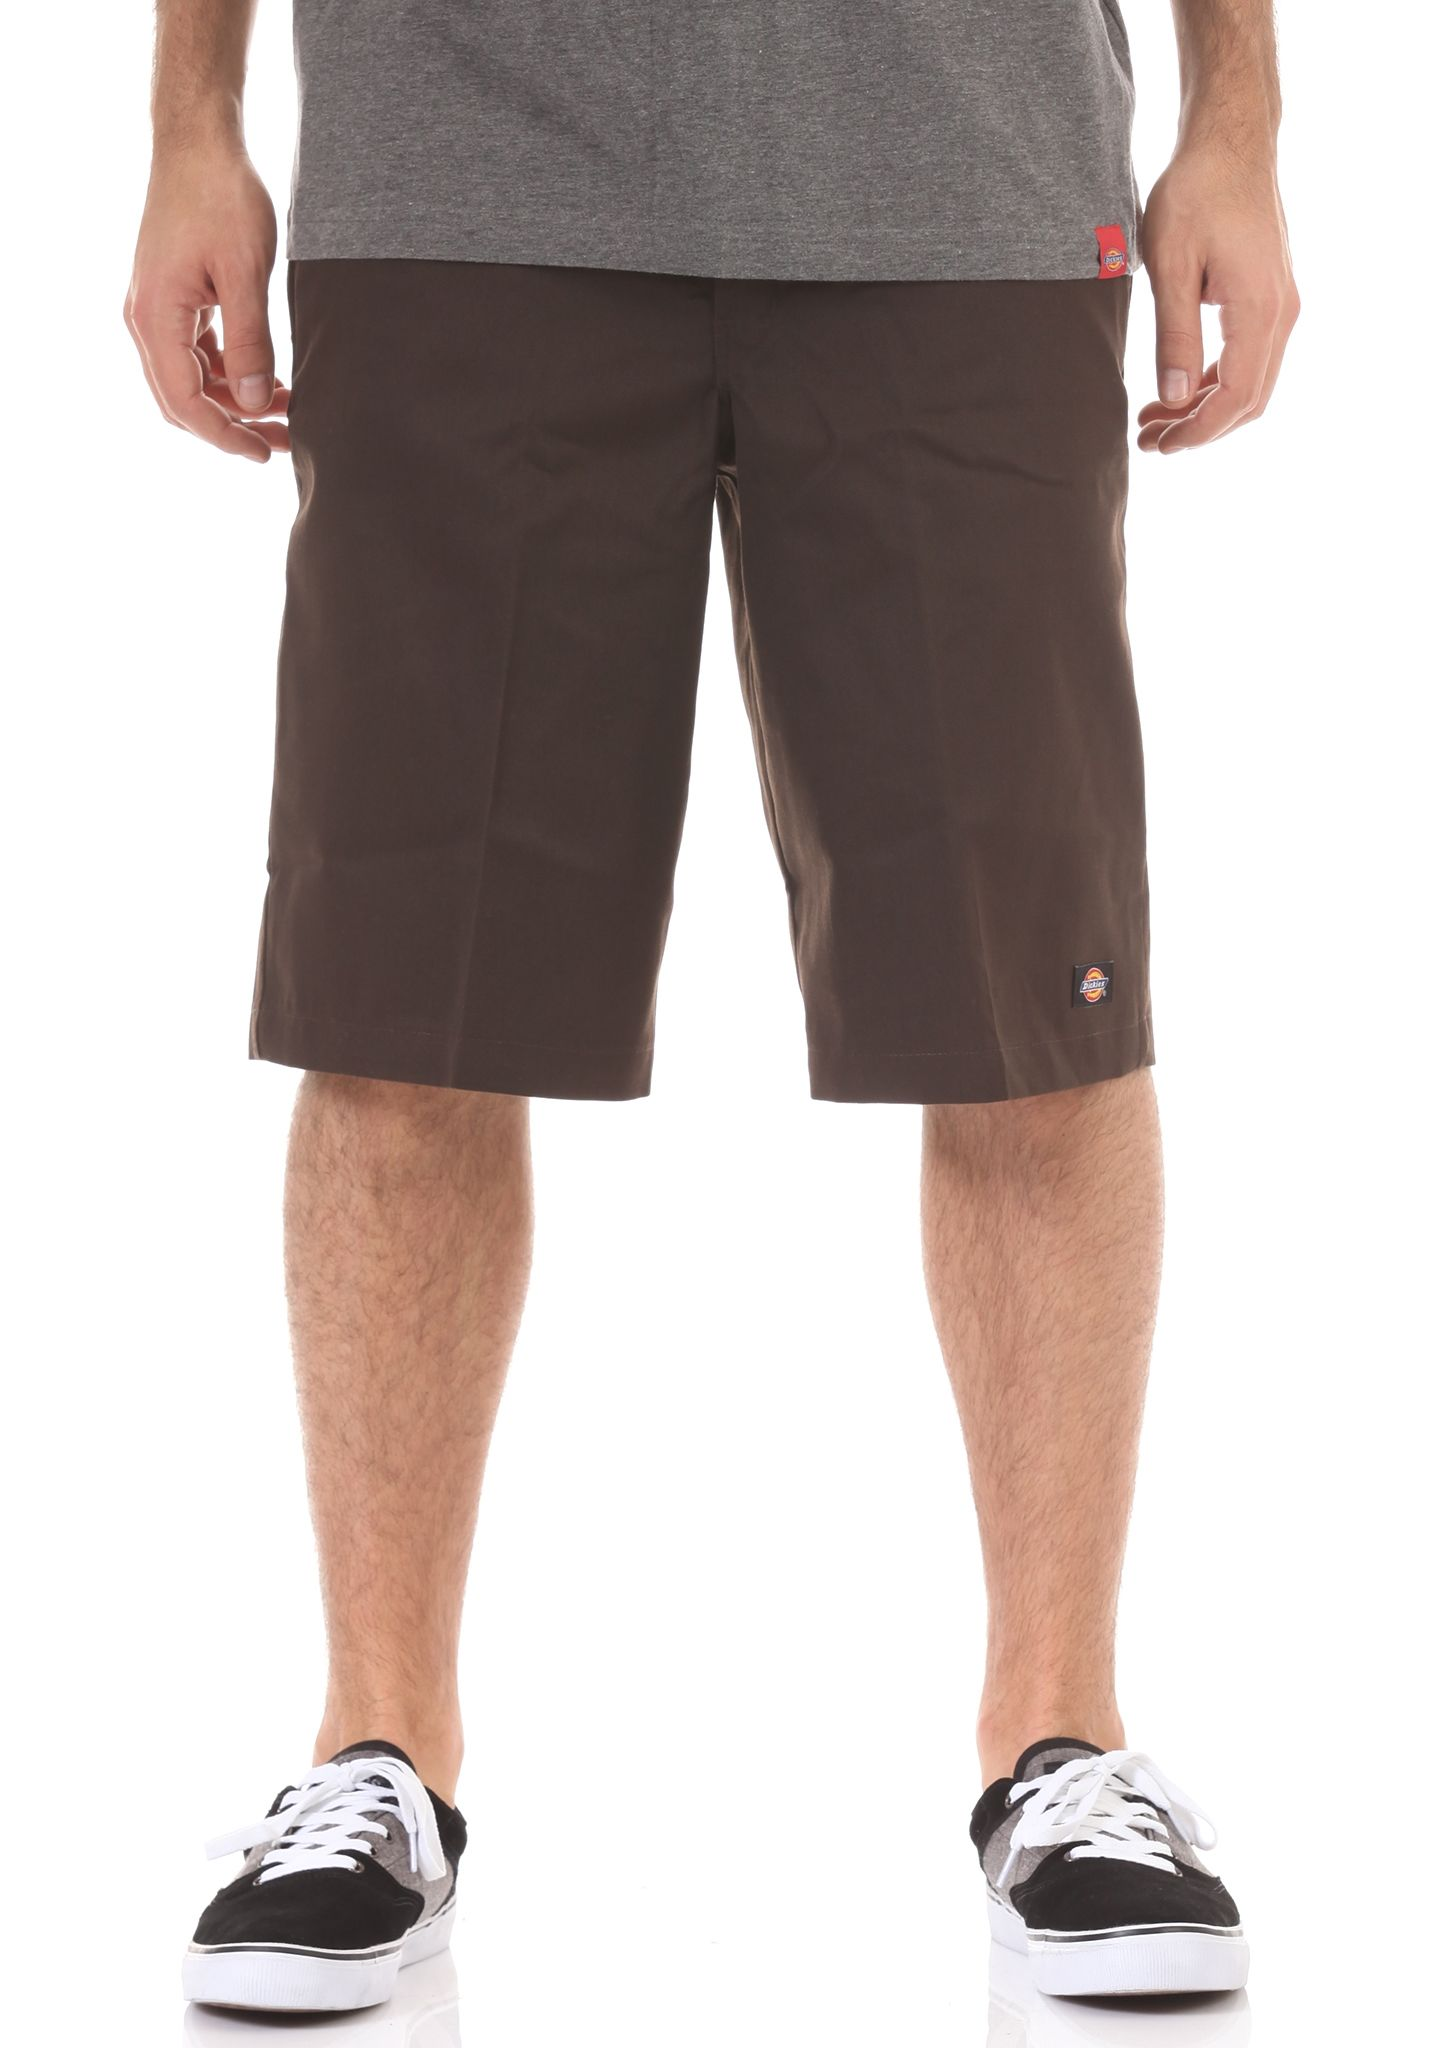 Dickies 13in Mlt Pocket - Chino Shorts for Men - Brown - Planet Sports